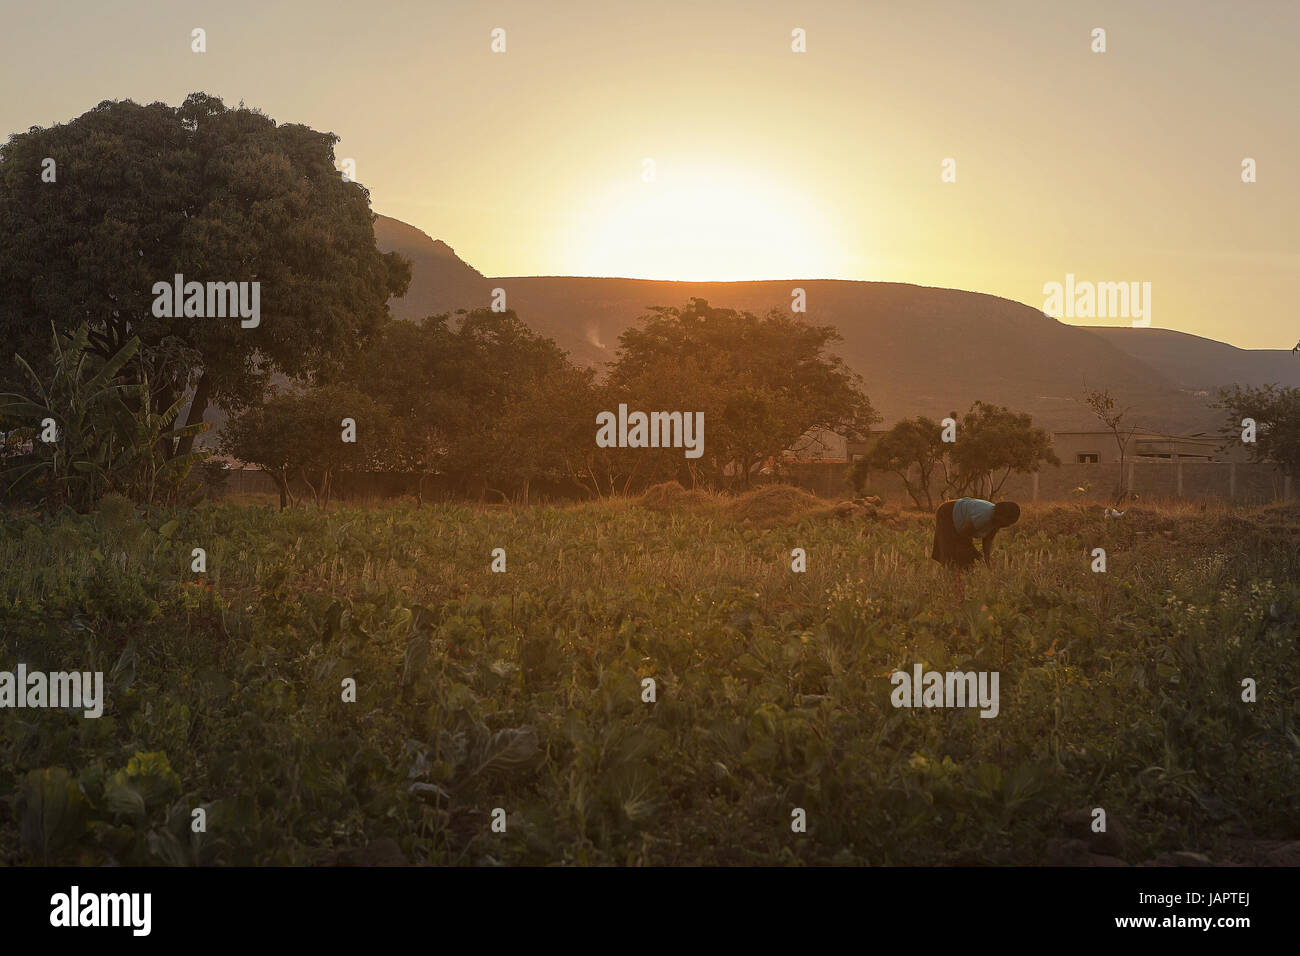 African farmer to plant in the garden at sunrise, Lubango Angola - Stock Image